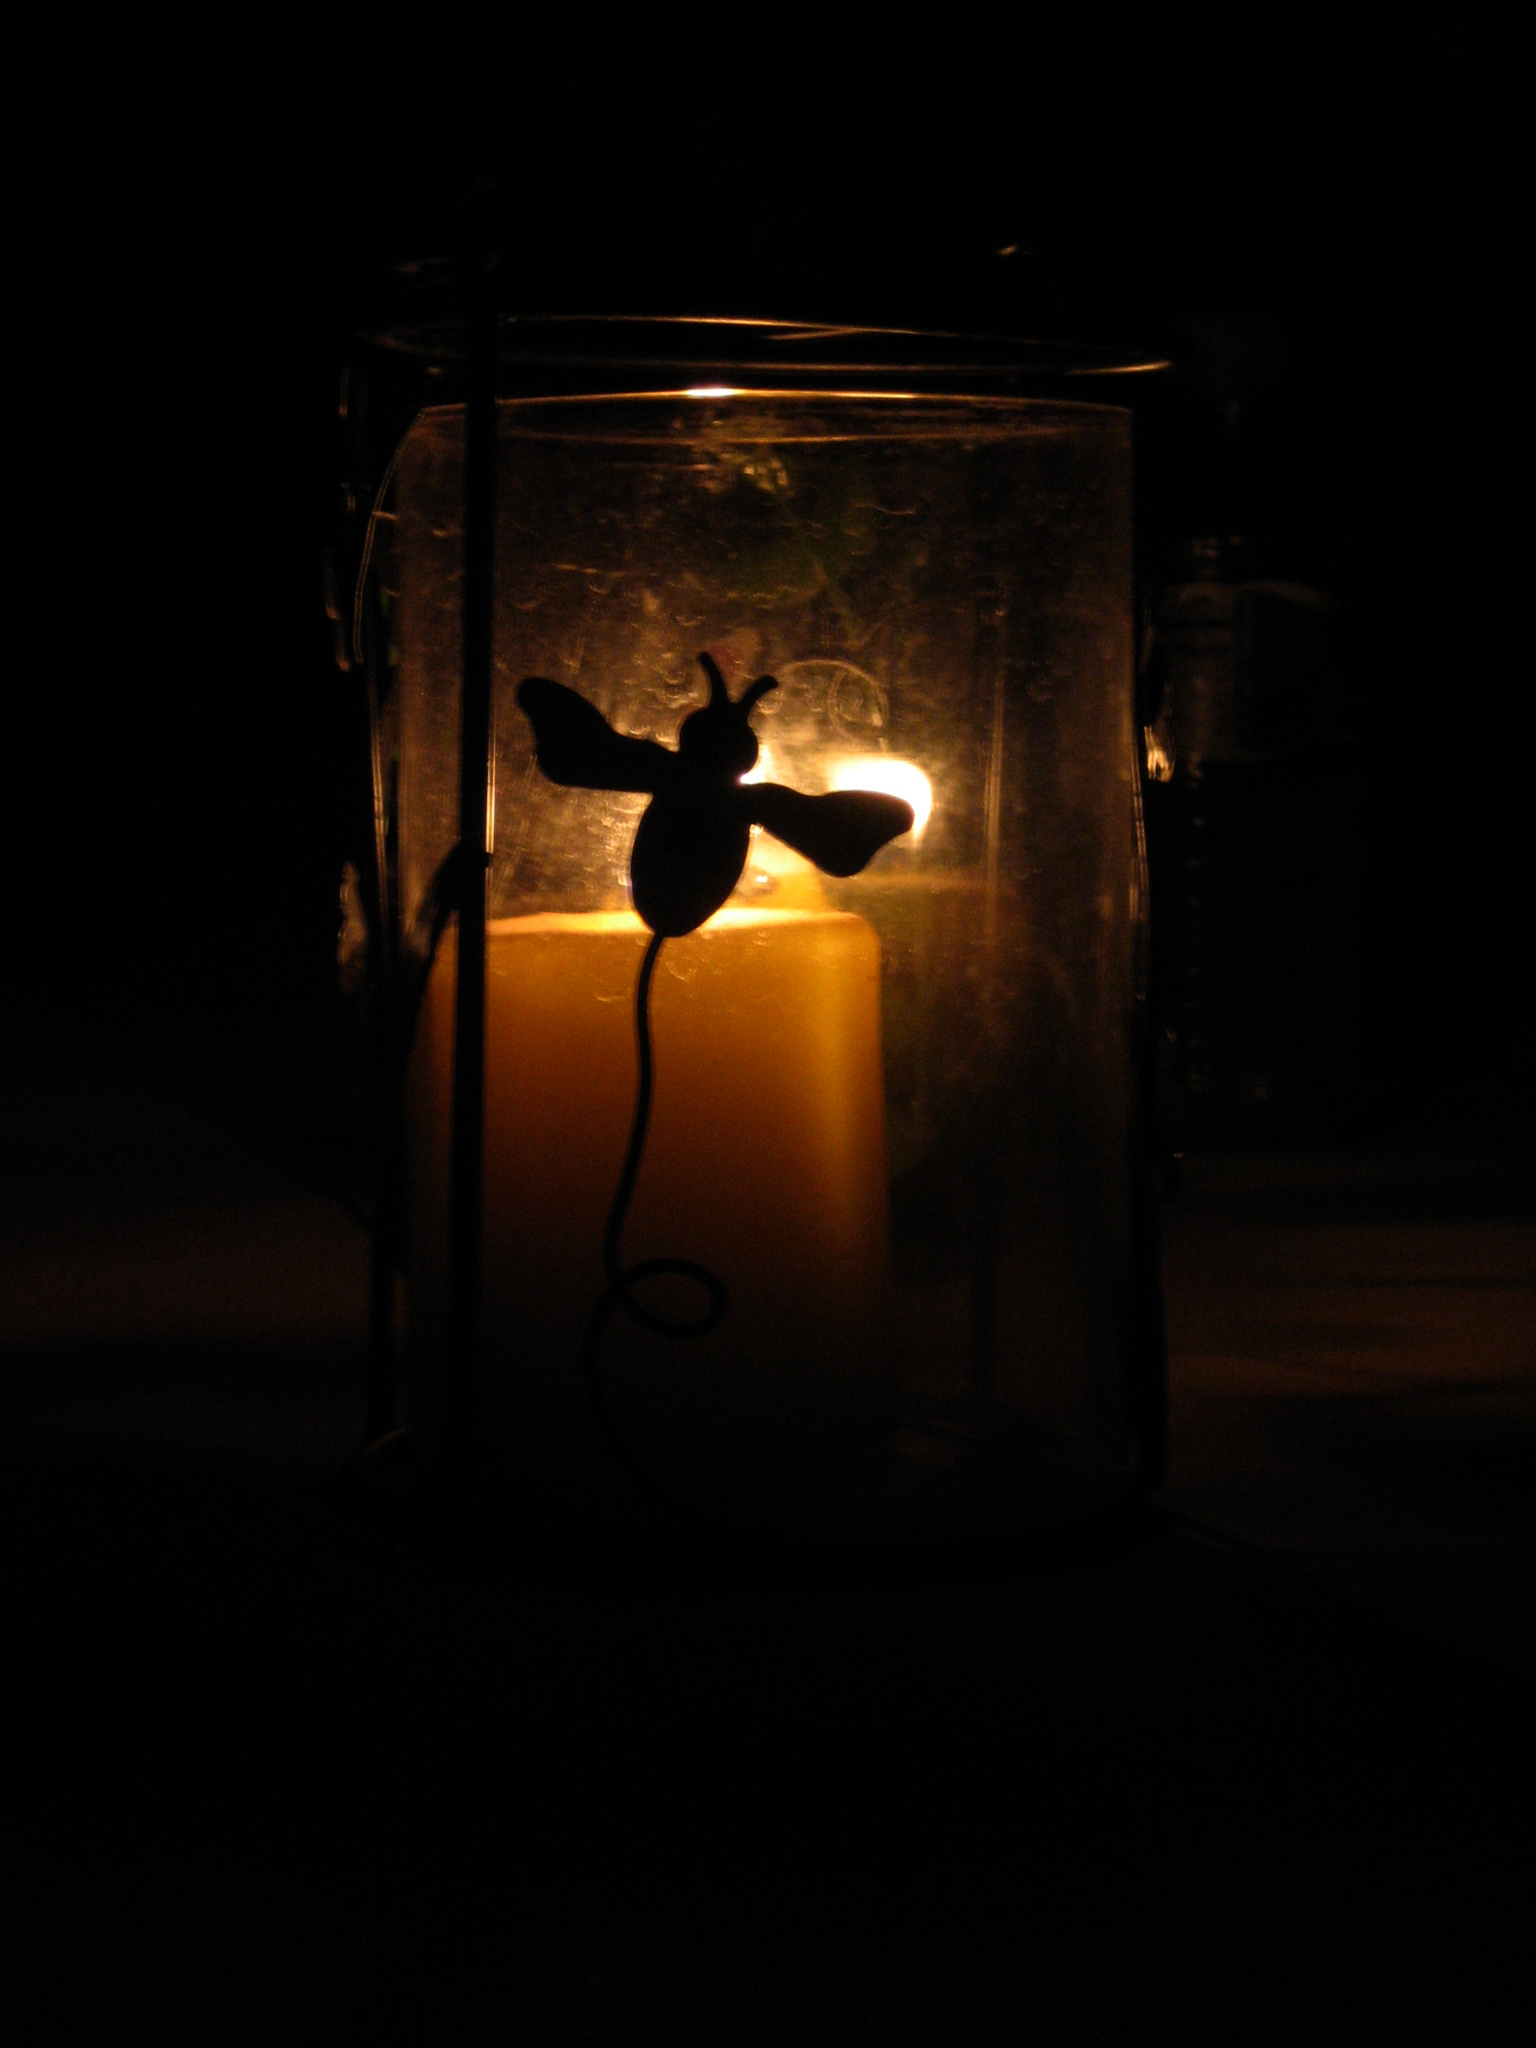 Silhouetted Candle, Light, Bspo06, Effects, Dark, HQ Photo